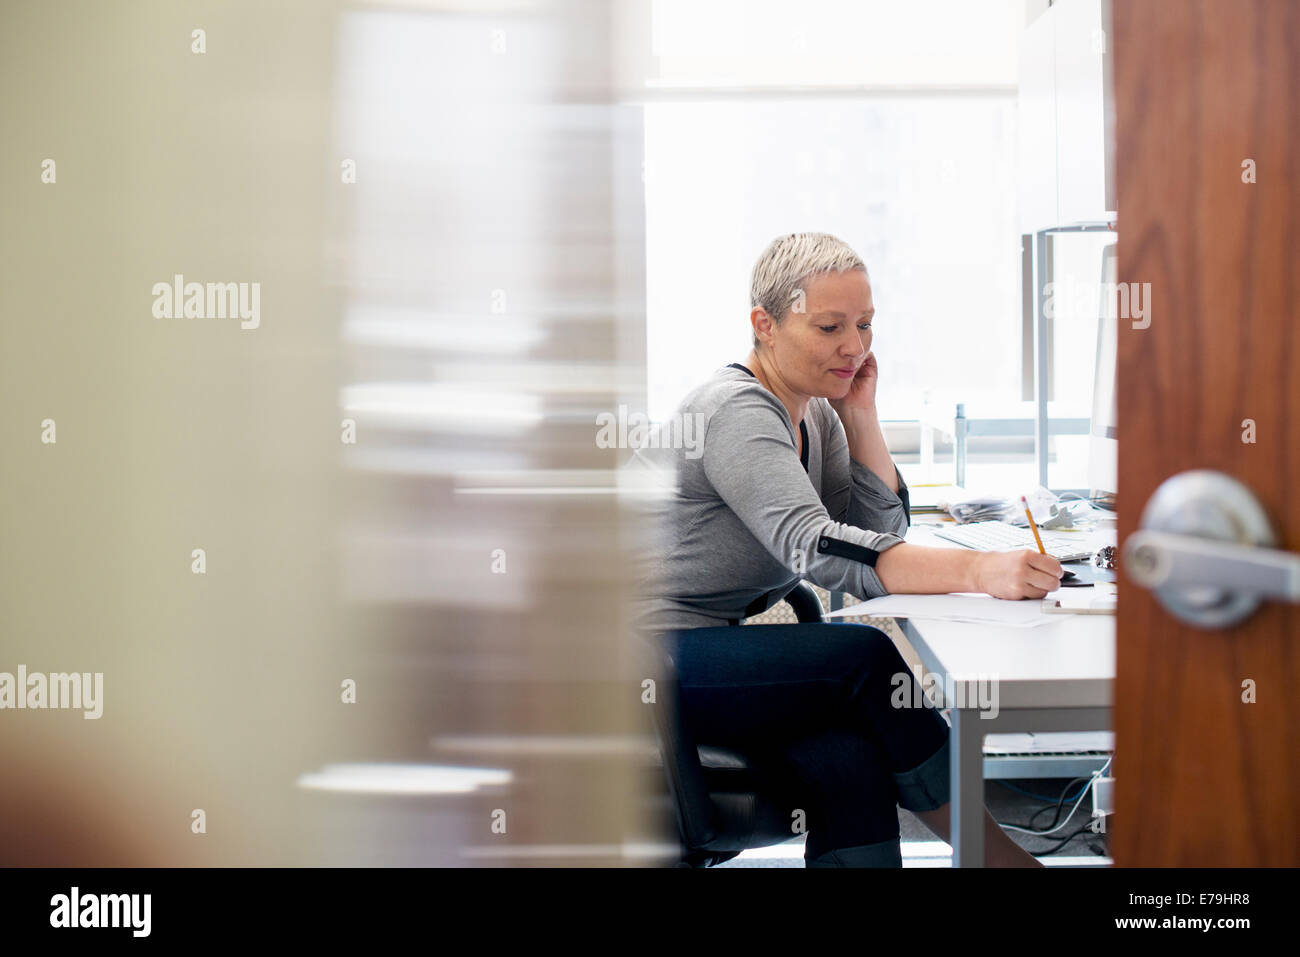 A woman working in an office alone. Focusing on a task, making notes with a pencil. - Stock Image